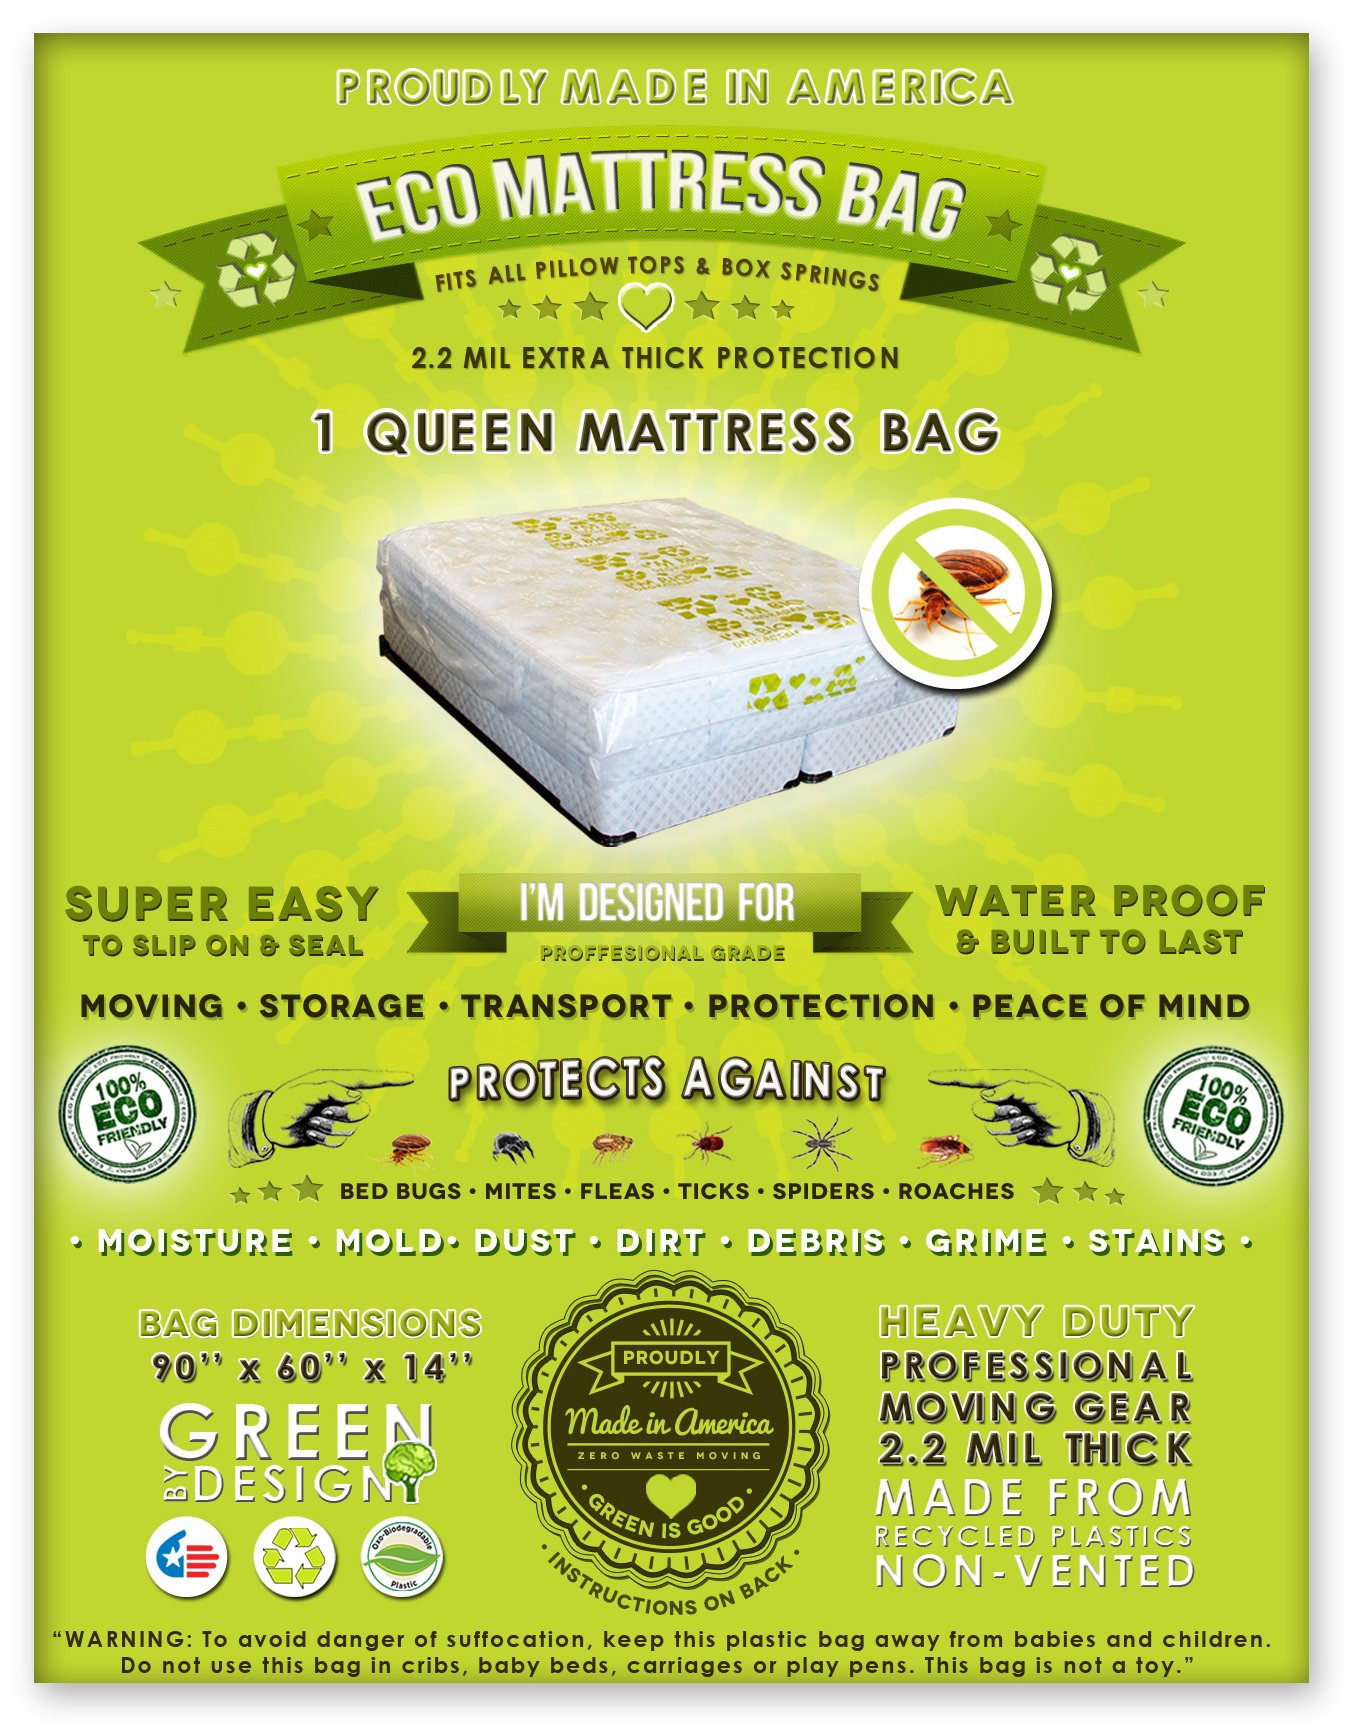 1 Queen Size Mattress Bag. Fits All Pillow Tops and Box Springs. Ideal for Moving, Storage and Protecting Your Mattress. Heavy Duty Professional Grade. Easy to Slip on and Seal. Sleep with Peace of Mind and Don't Let the Bed Bugs Bite. Protect Your Invest